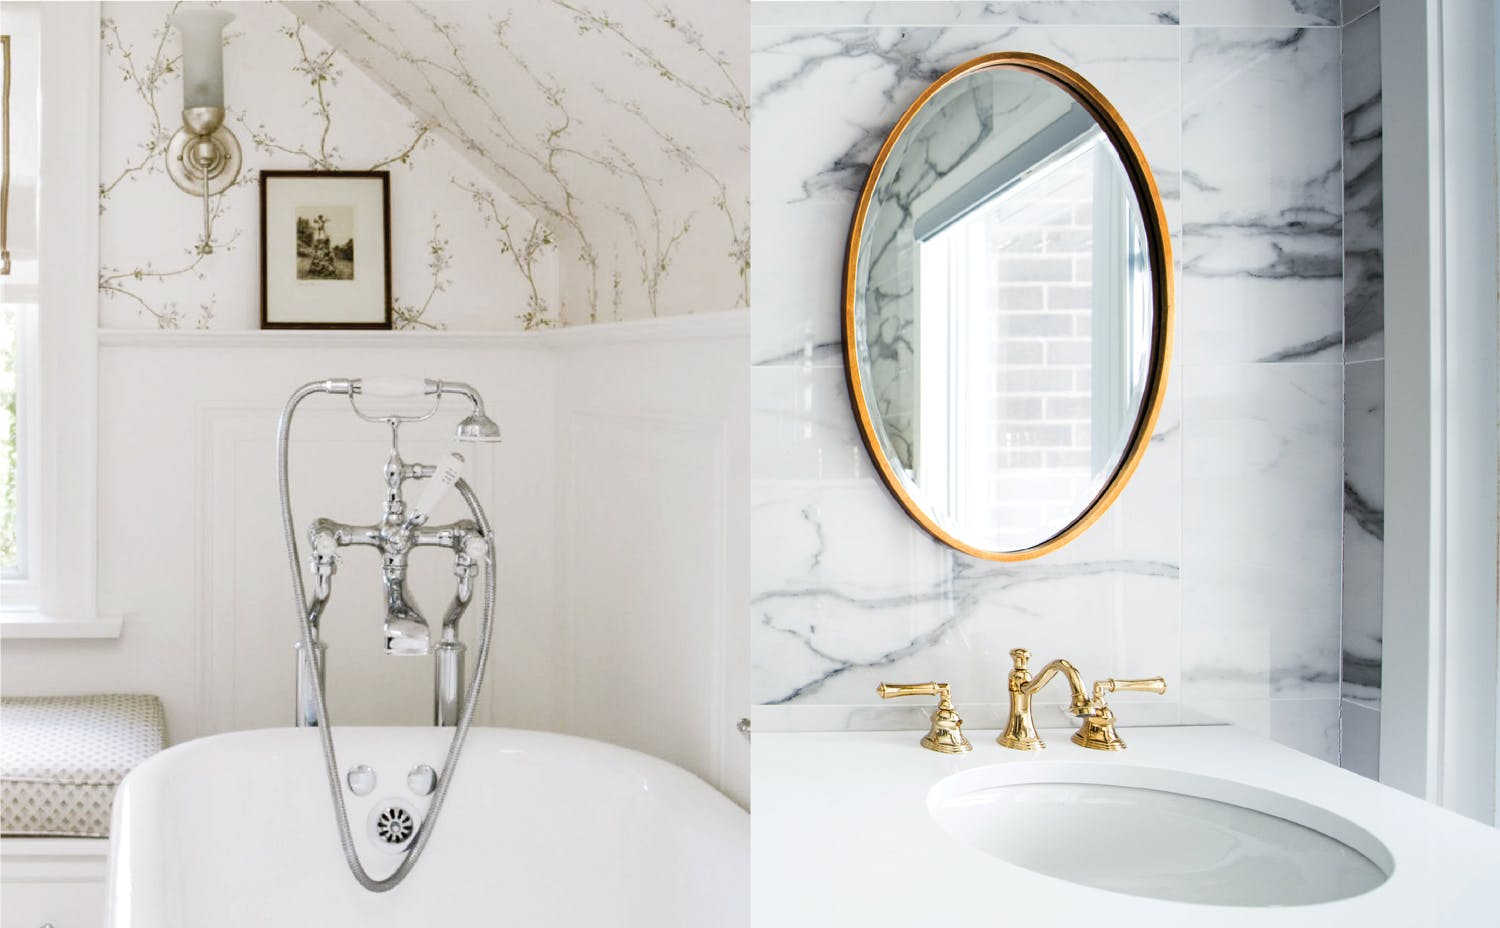 Luxury antique faucet and simple under-mount sink